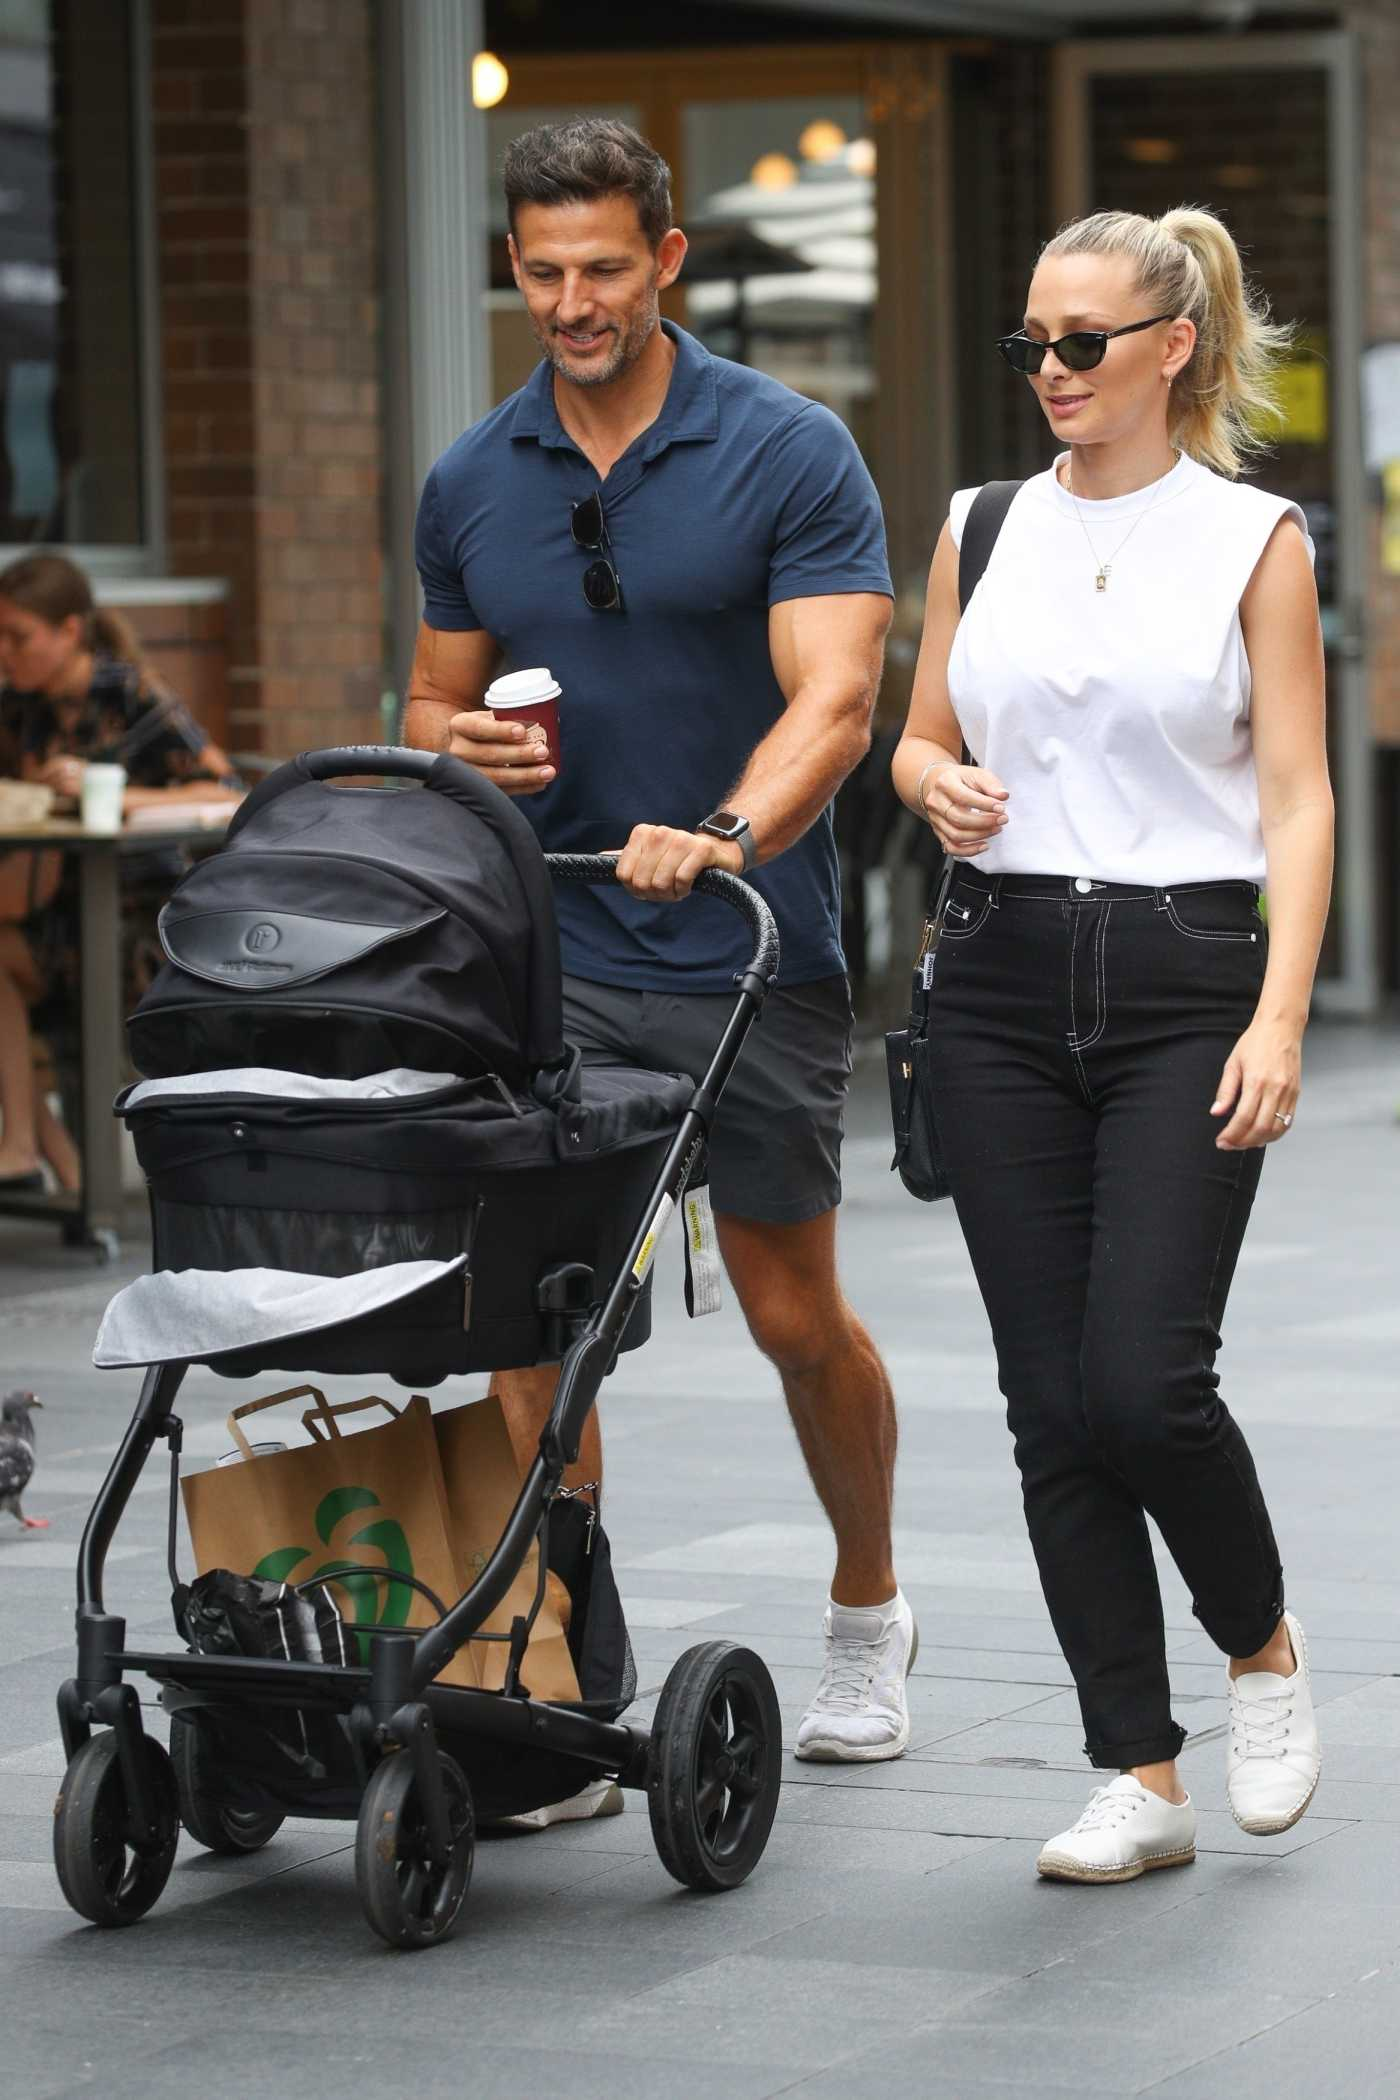 Anna Heinrich in a White Tee Takes Her Newborn Out for a Stroll with Tim Robards in Sydney 02/25/2021